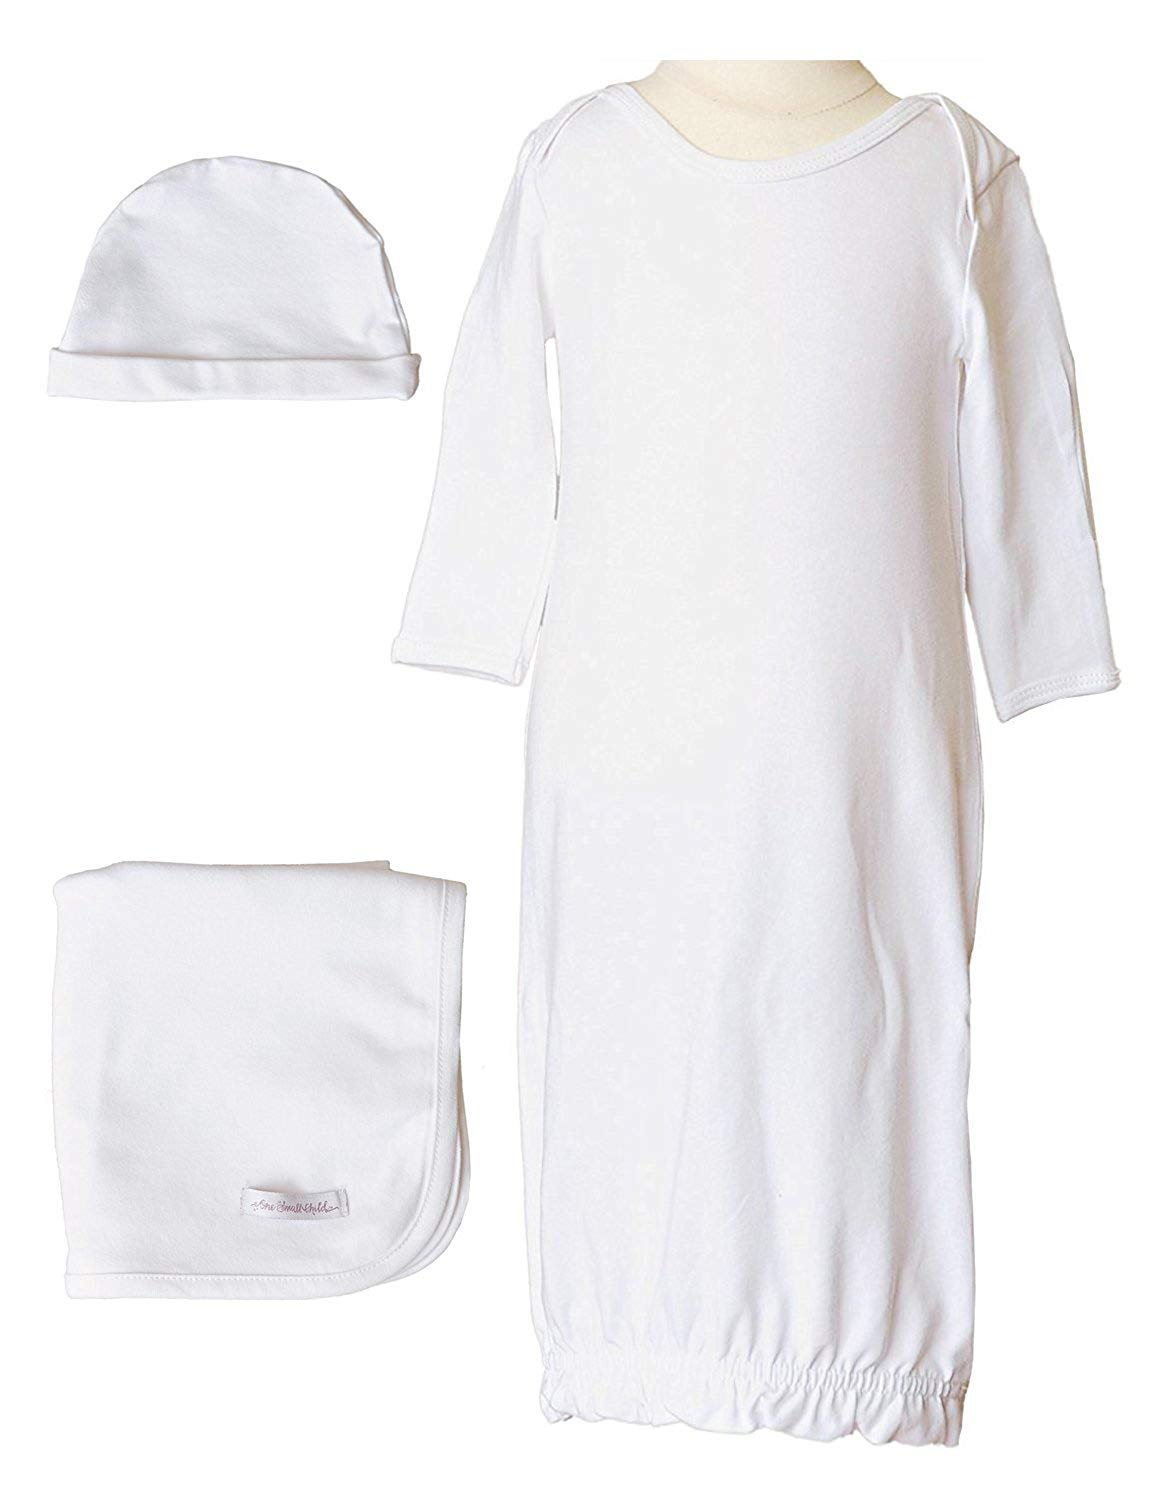 c9b5d3e169ef92 Get Quotations · One Small Child Boys Three-Piece Bamboo Layette Set